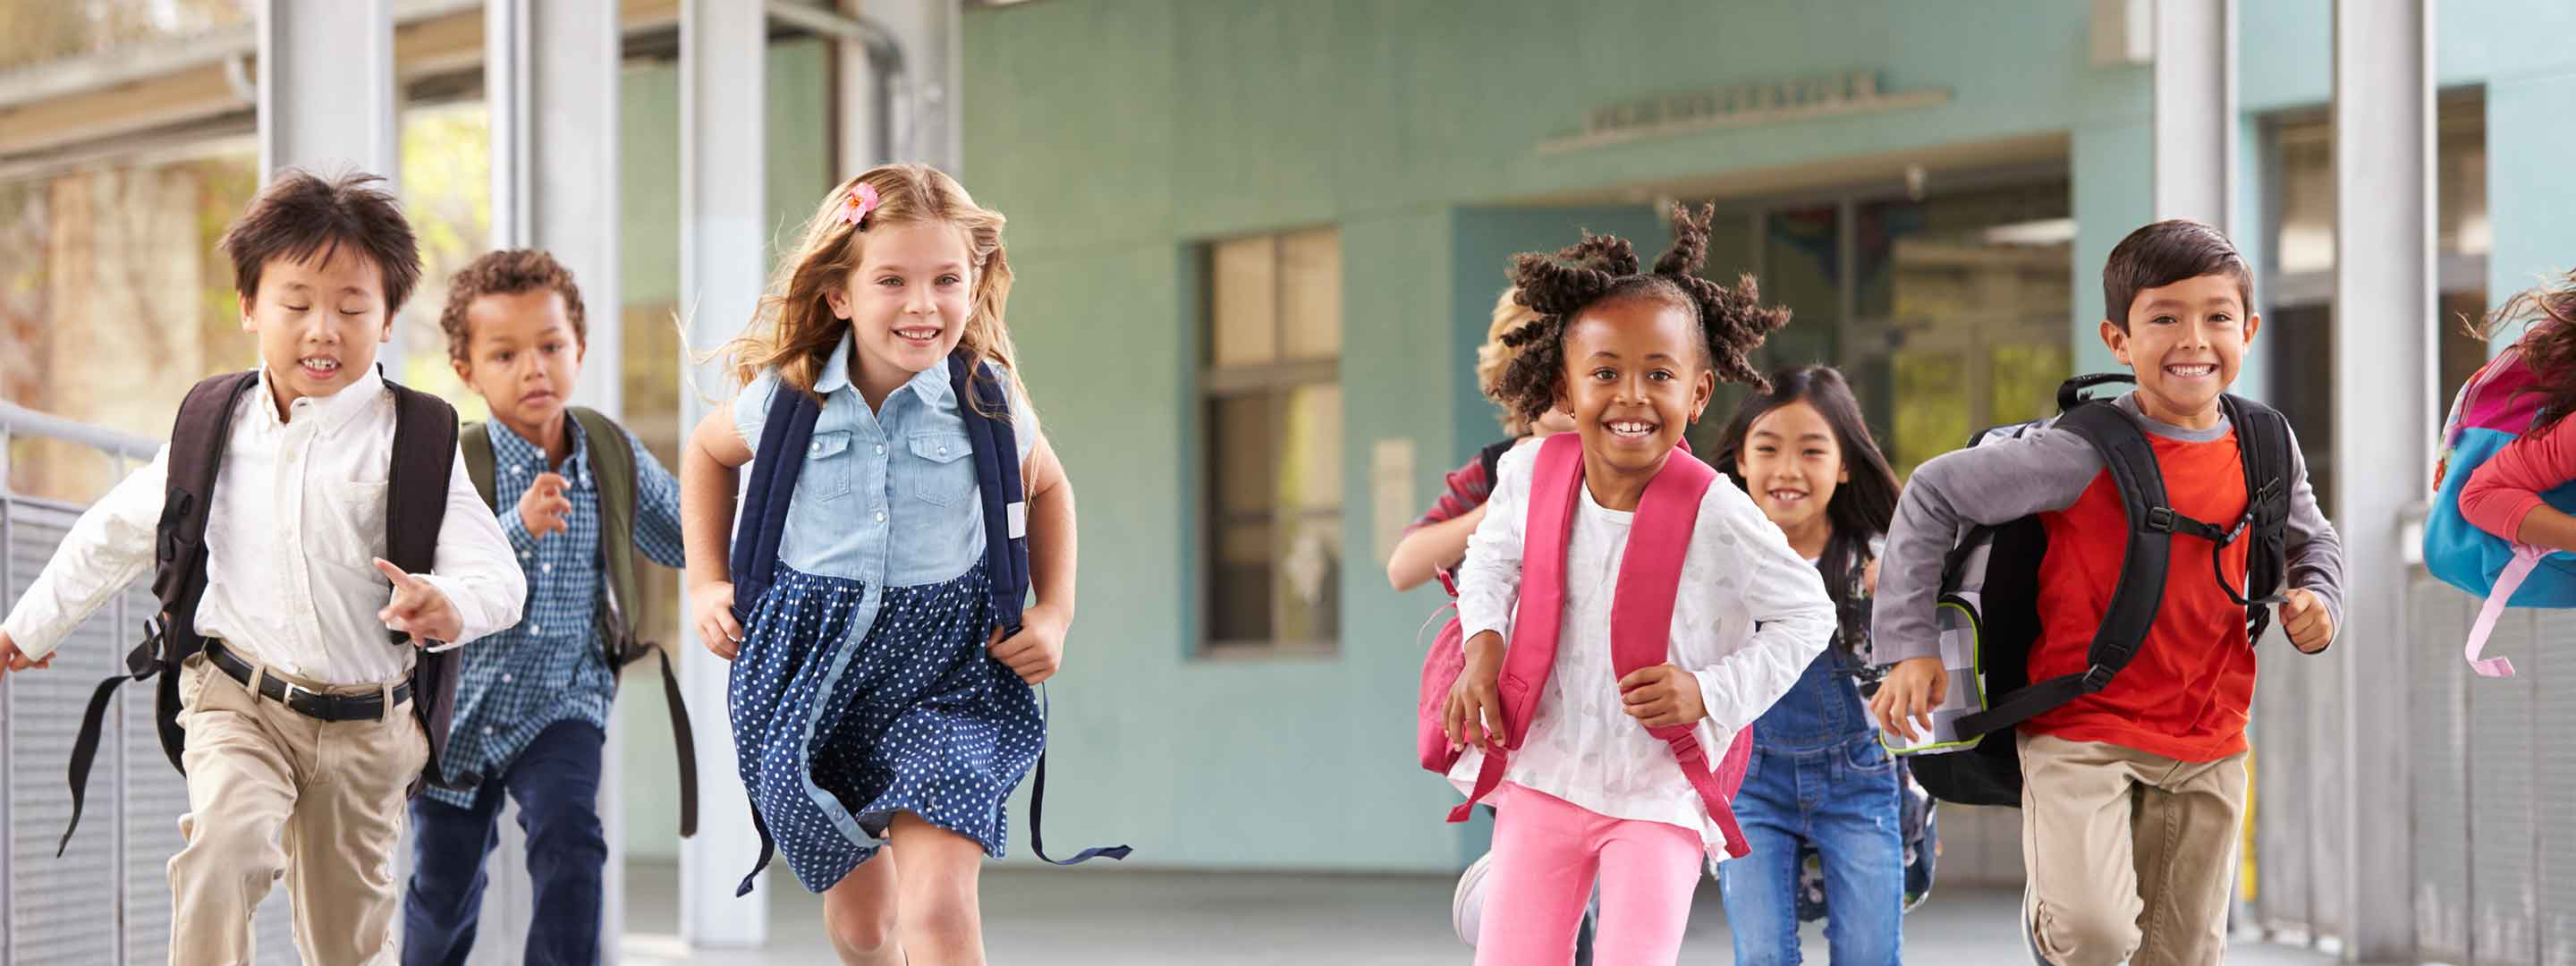 Kids running outside of their school